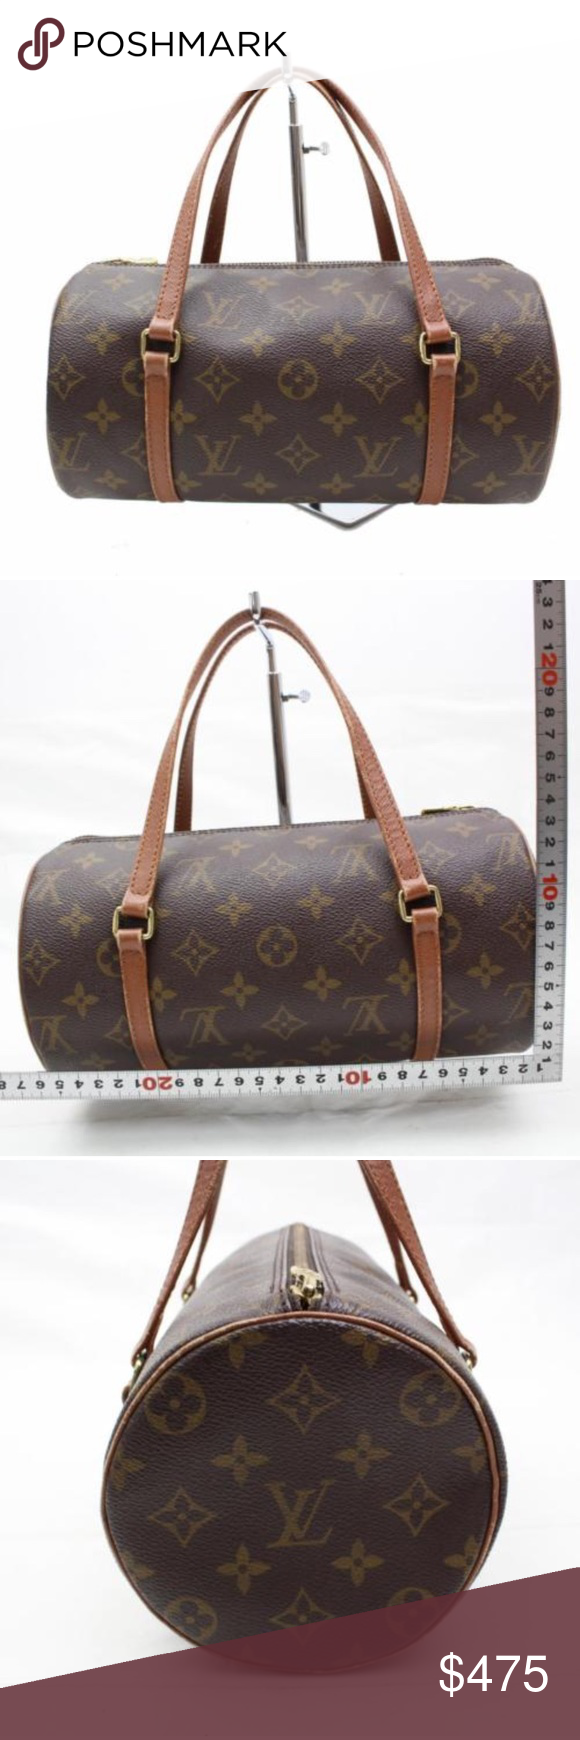 3eccc09b1f2b0 ... used louis vuitton bags for sale 100 authentic .